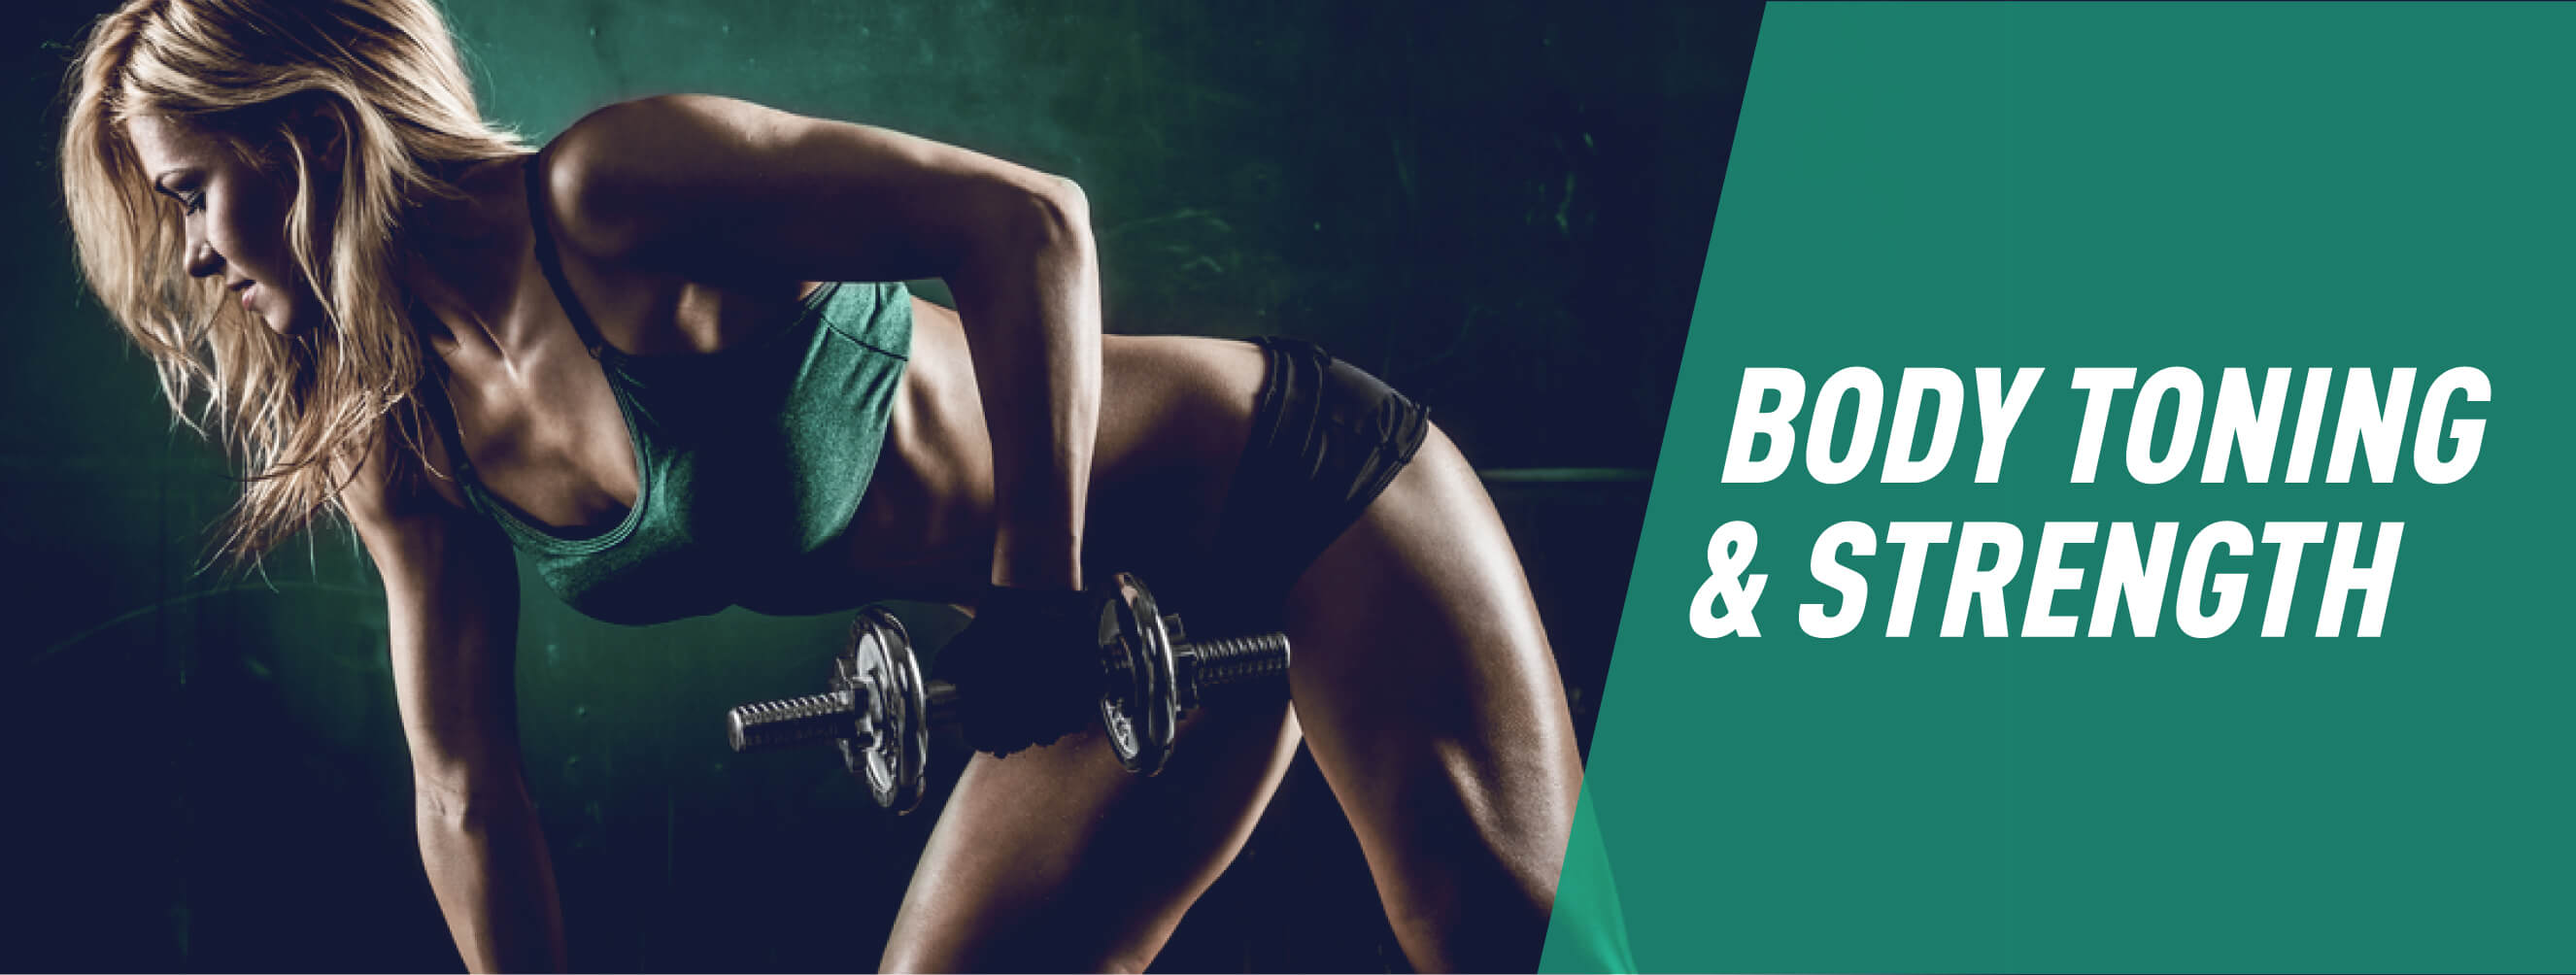 Body Toning & Strength - Online Programme